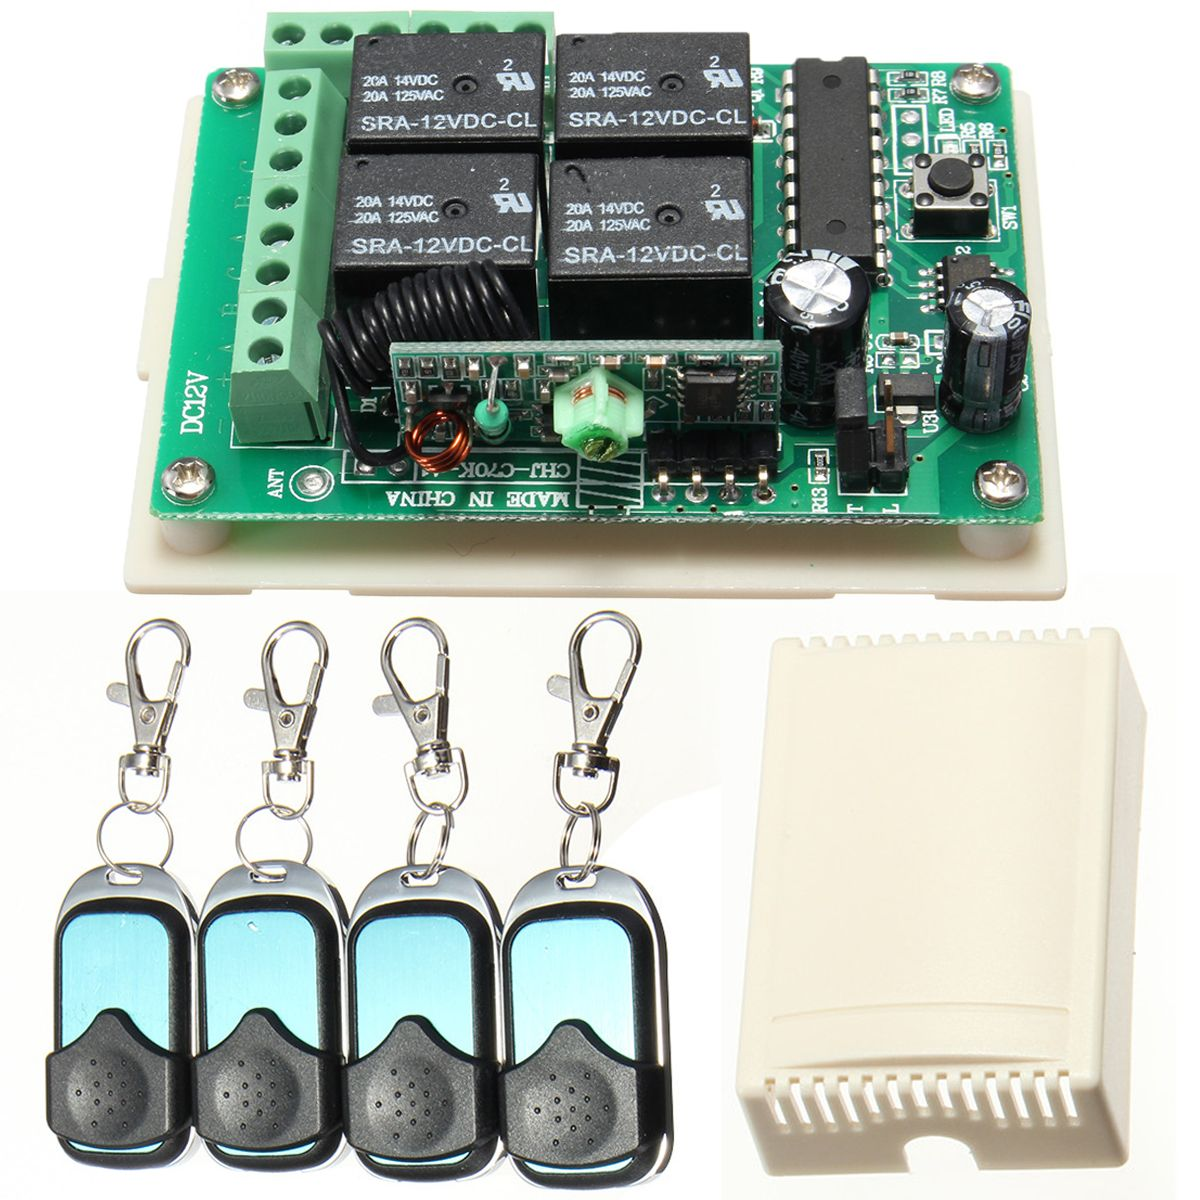 Hcs301 433mhz Rolling Code Remote Controller Wireless Power Supply Relay Receiver Coding Smart Electronics Wireless